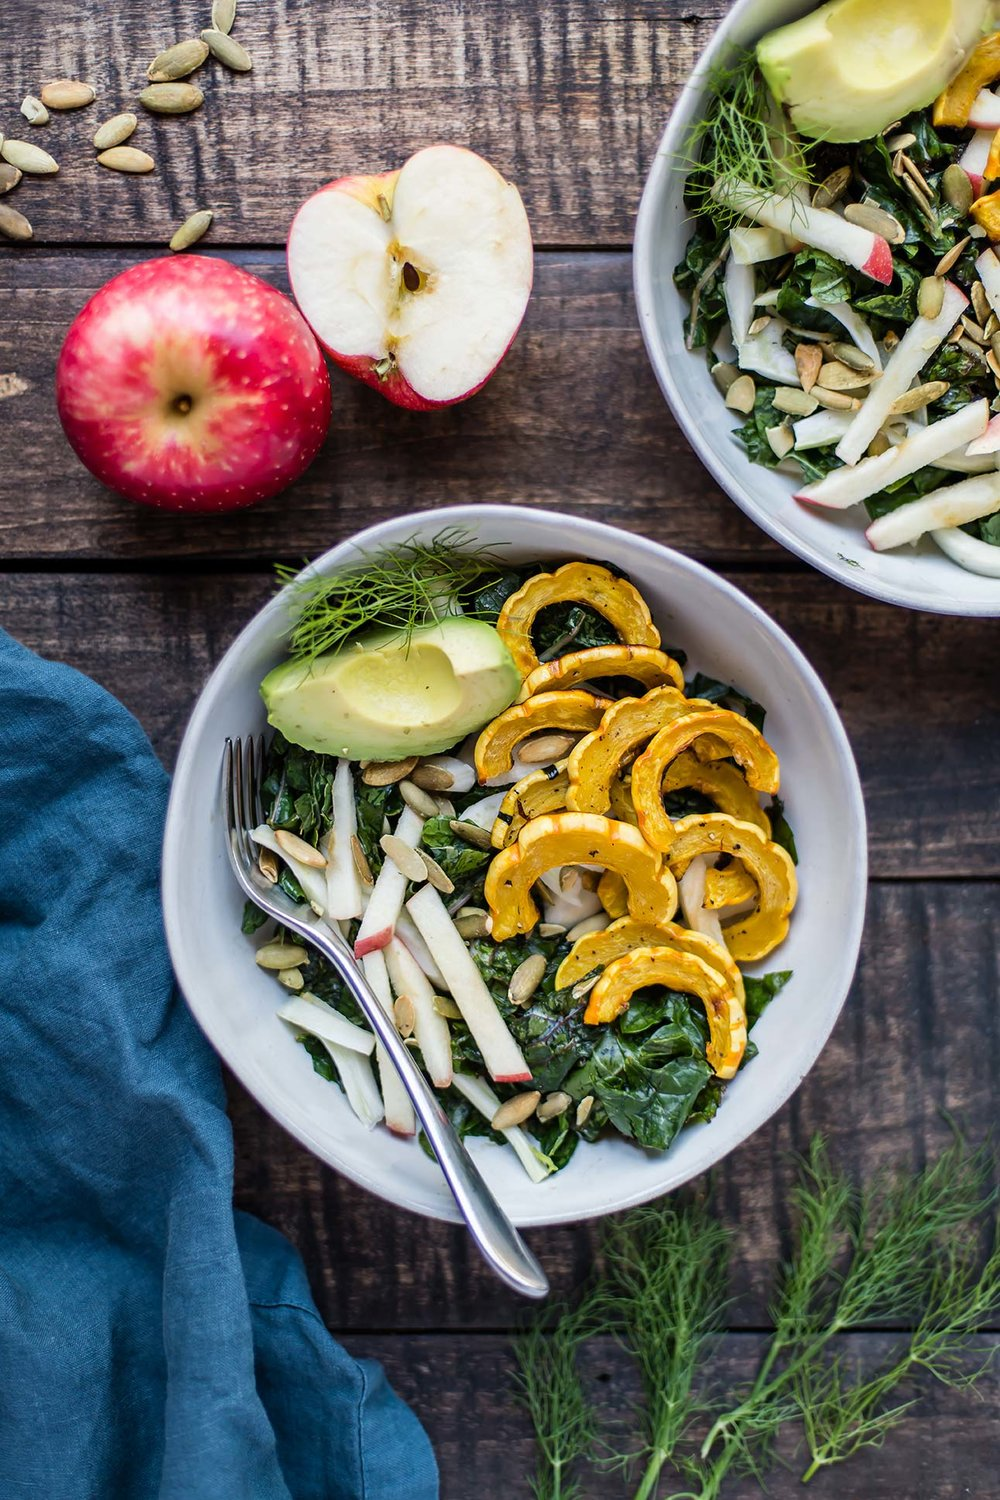 Winter Salad with Kale, Squash, Apples & Fennel